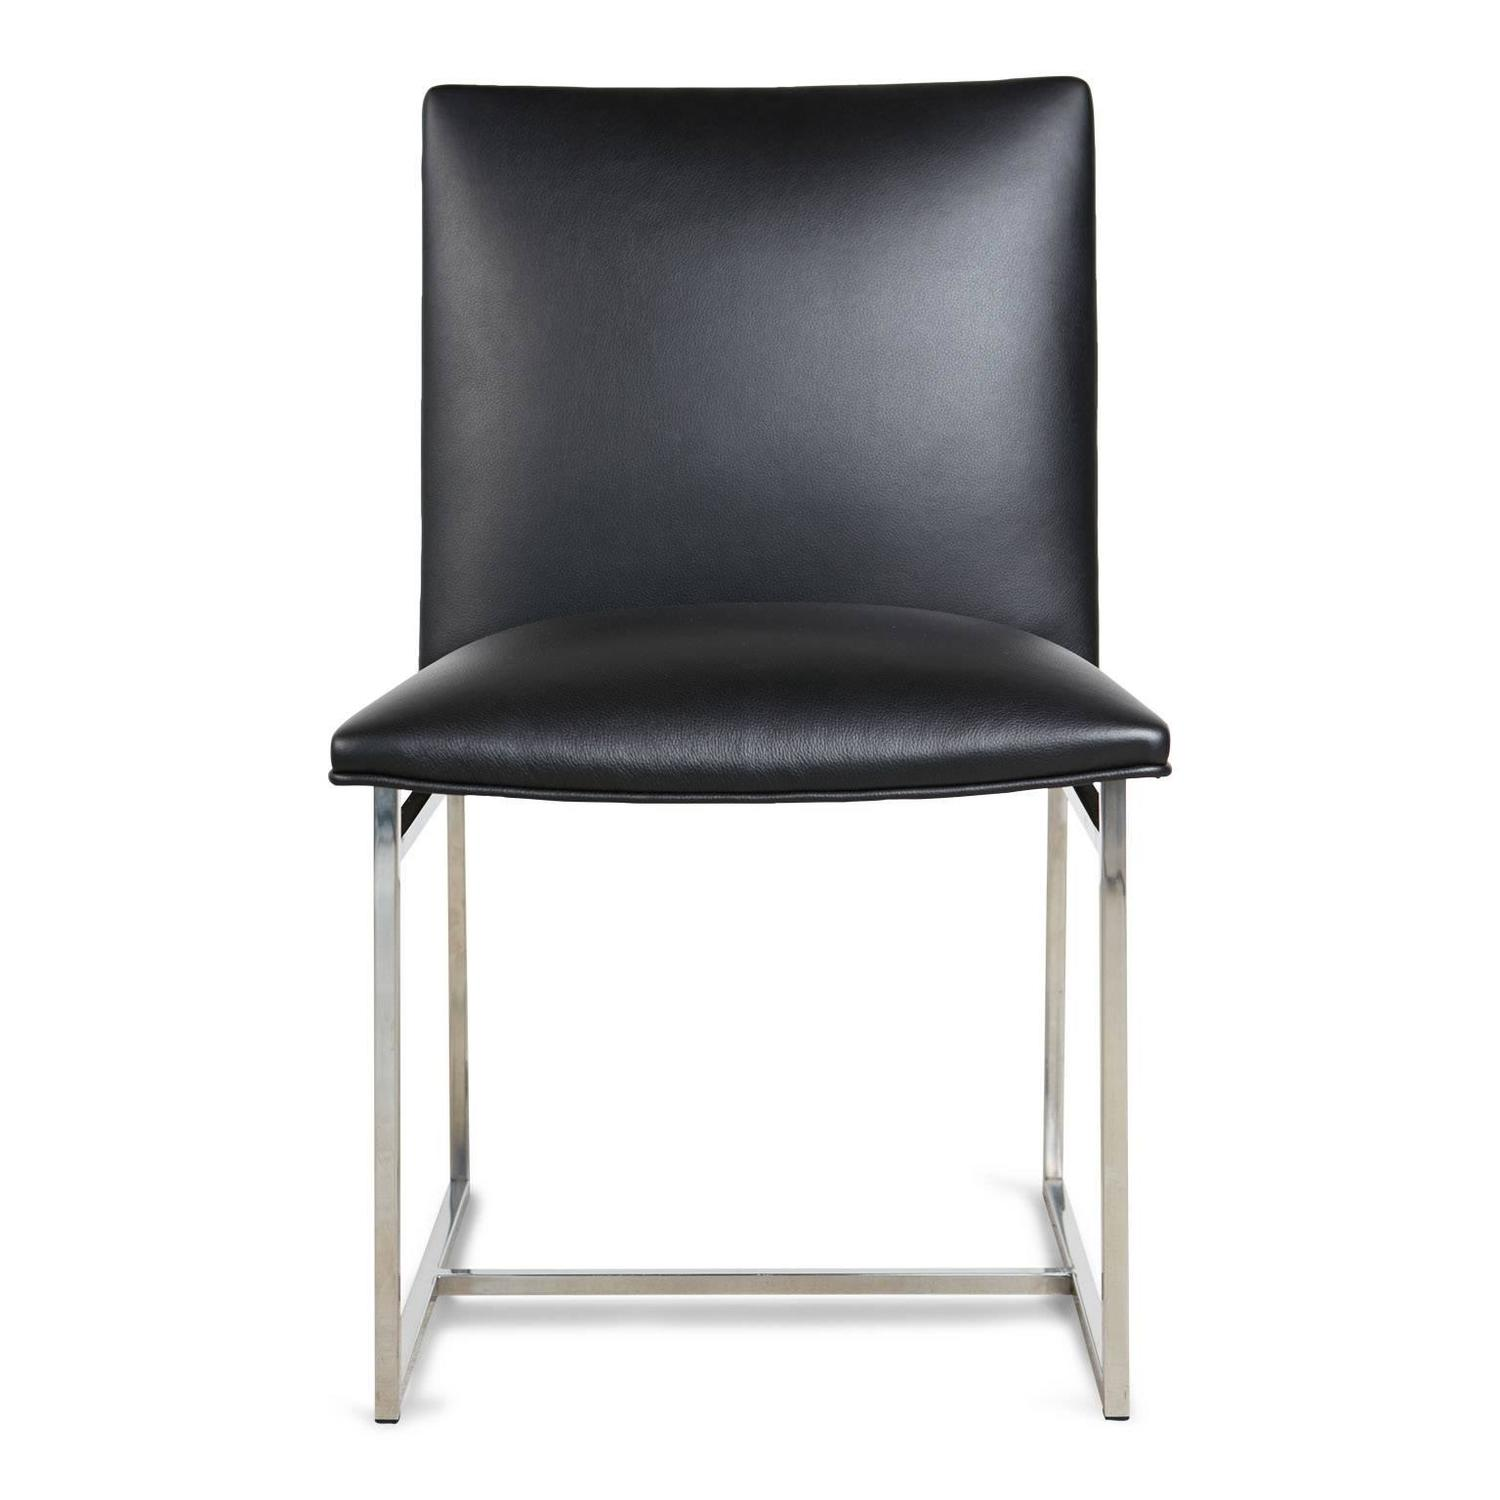 Set milo baughman 8 dining chairs reupholstered in edelman for Reupholstered chairs for sale